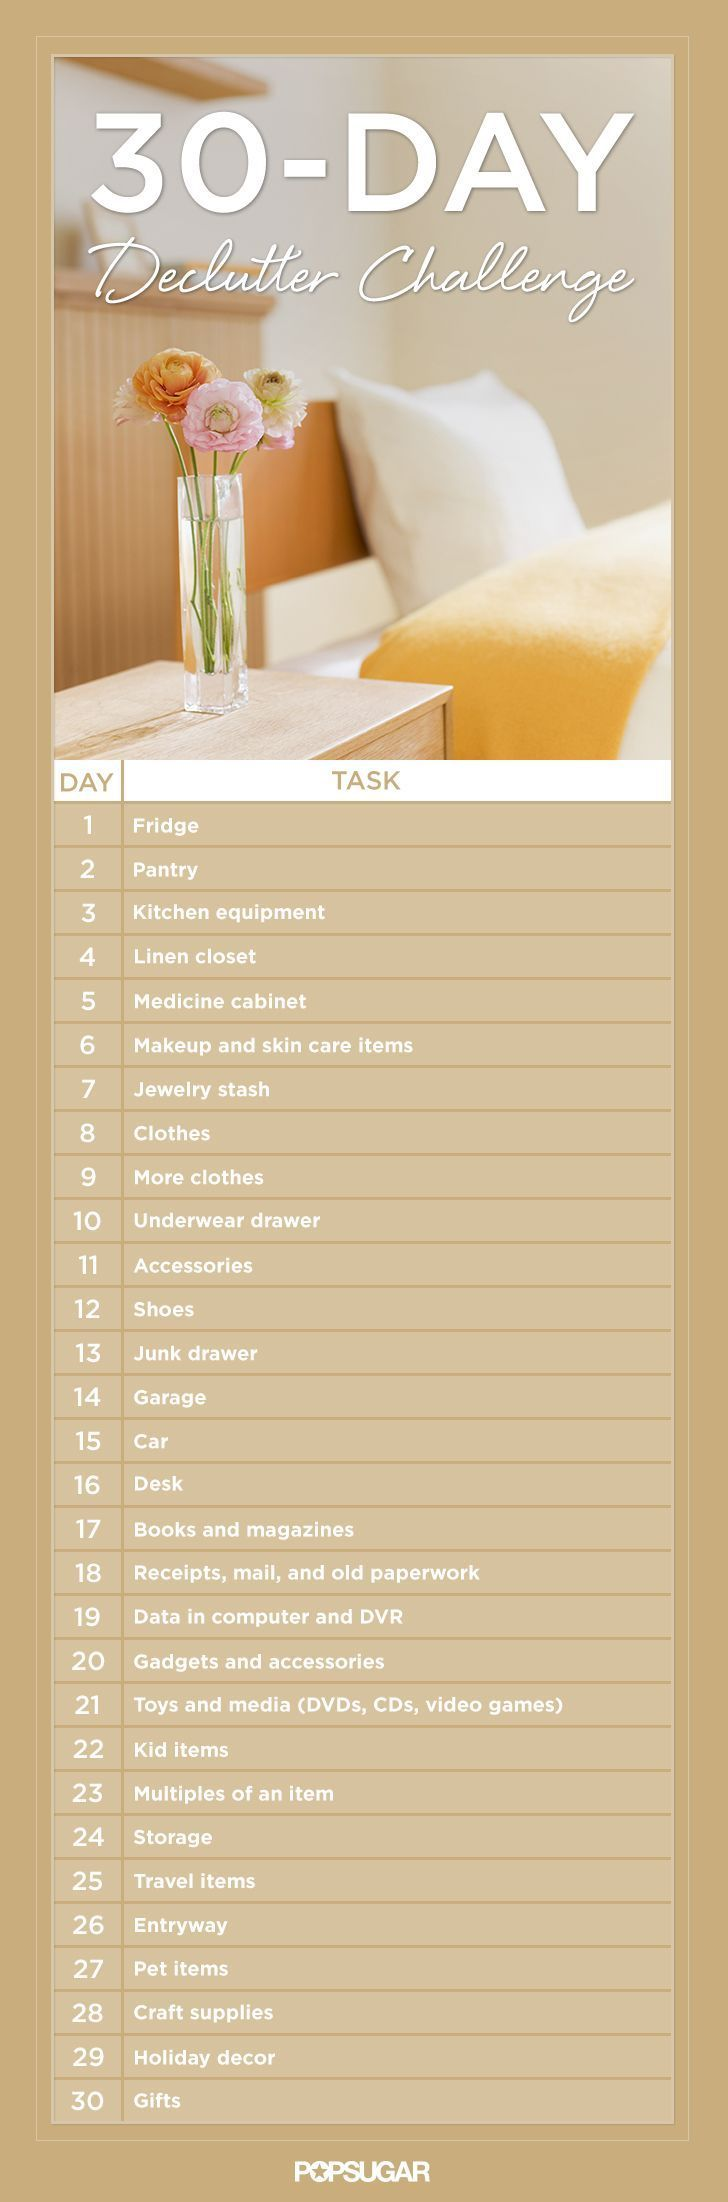 Get Organized With the 30-Day Declutter Challenge #organization #home